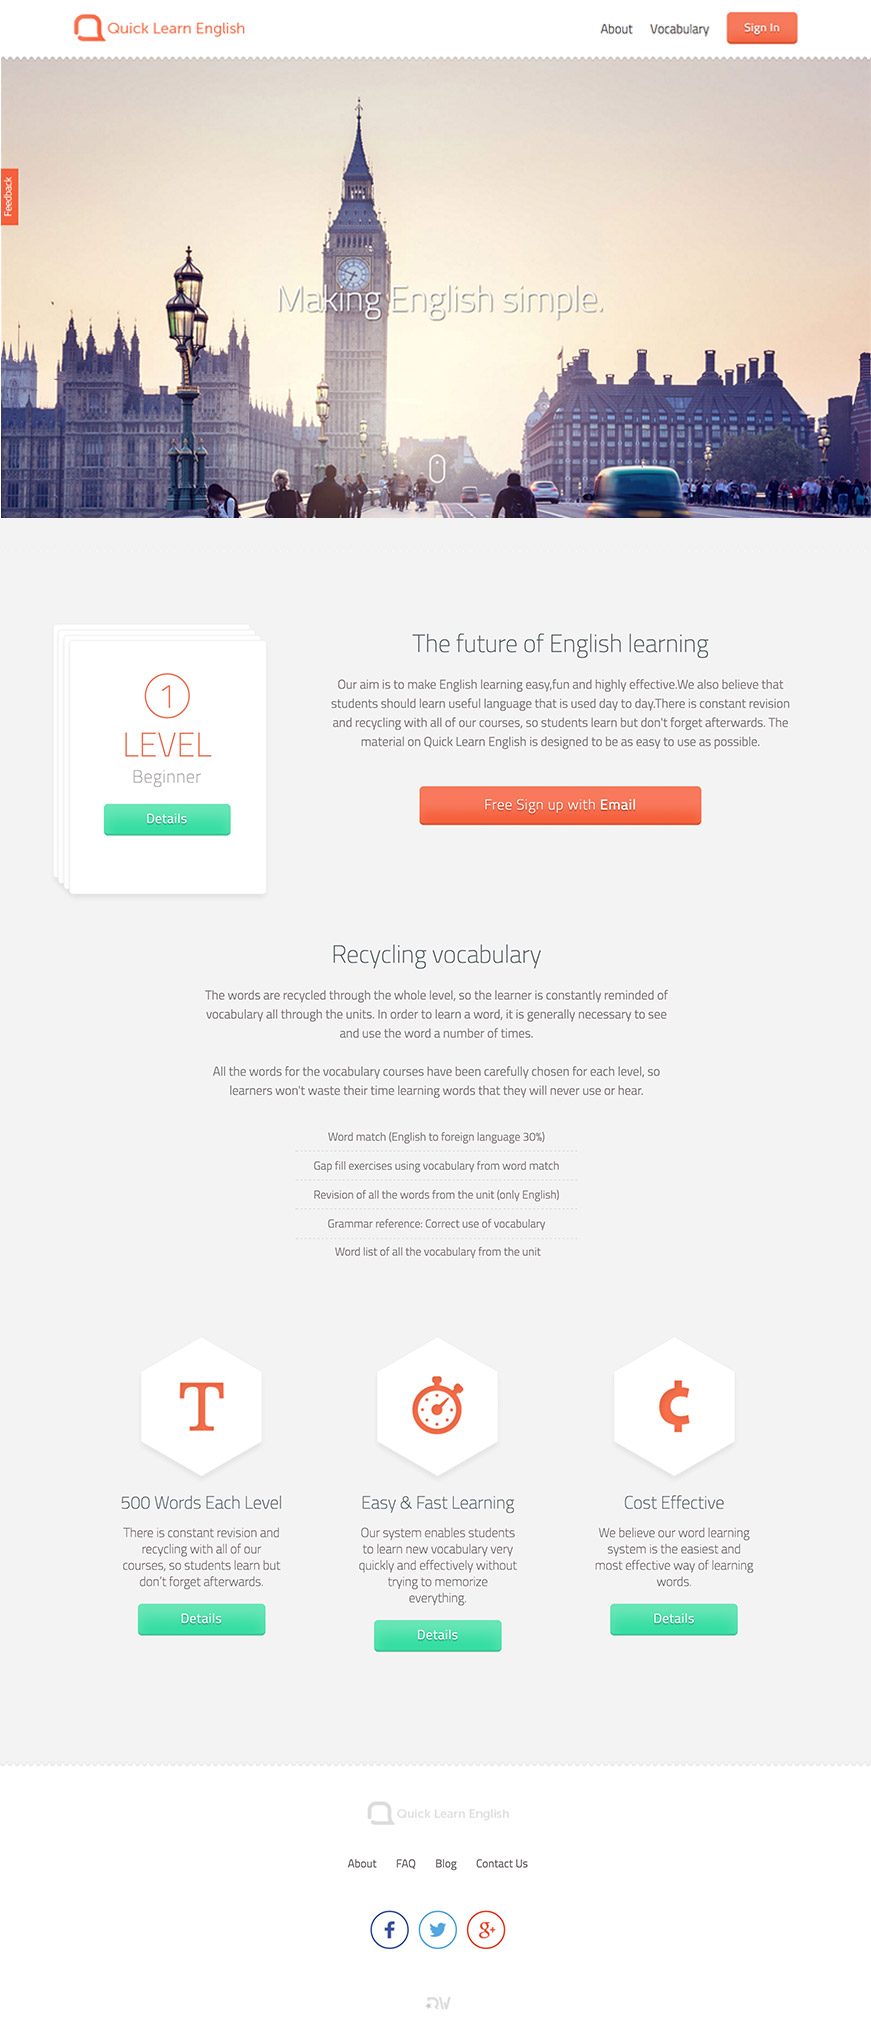 Quick Learn English